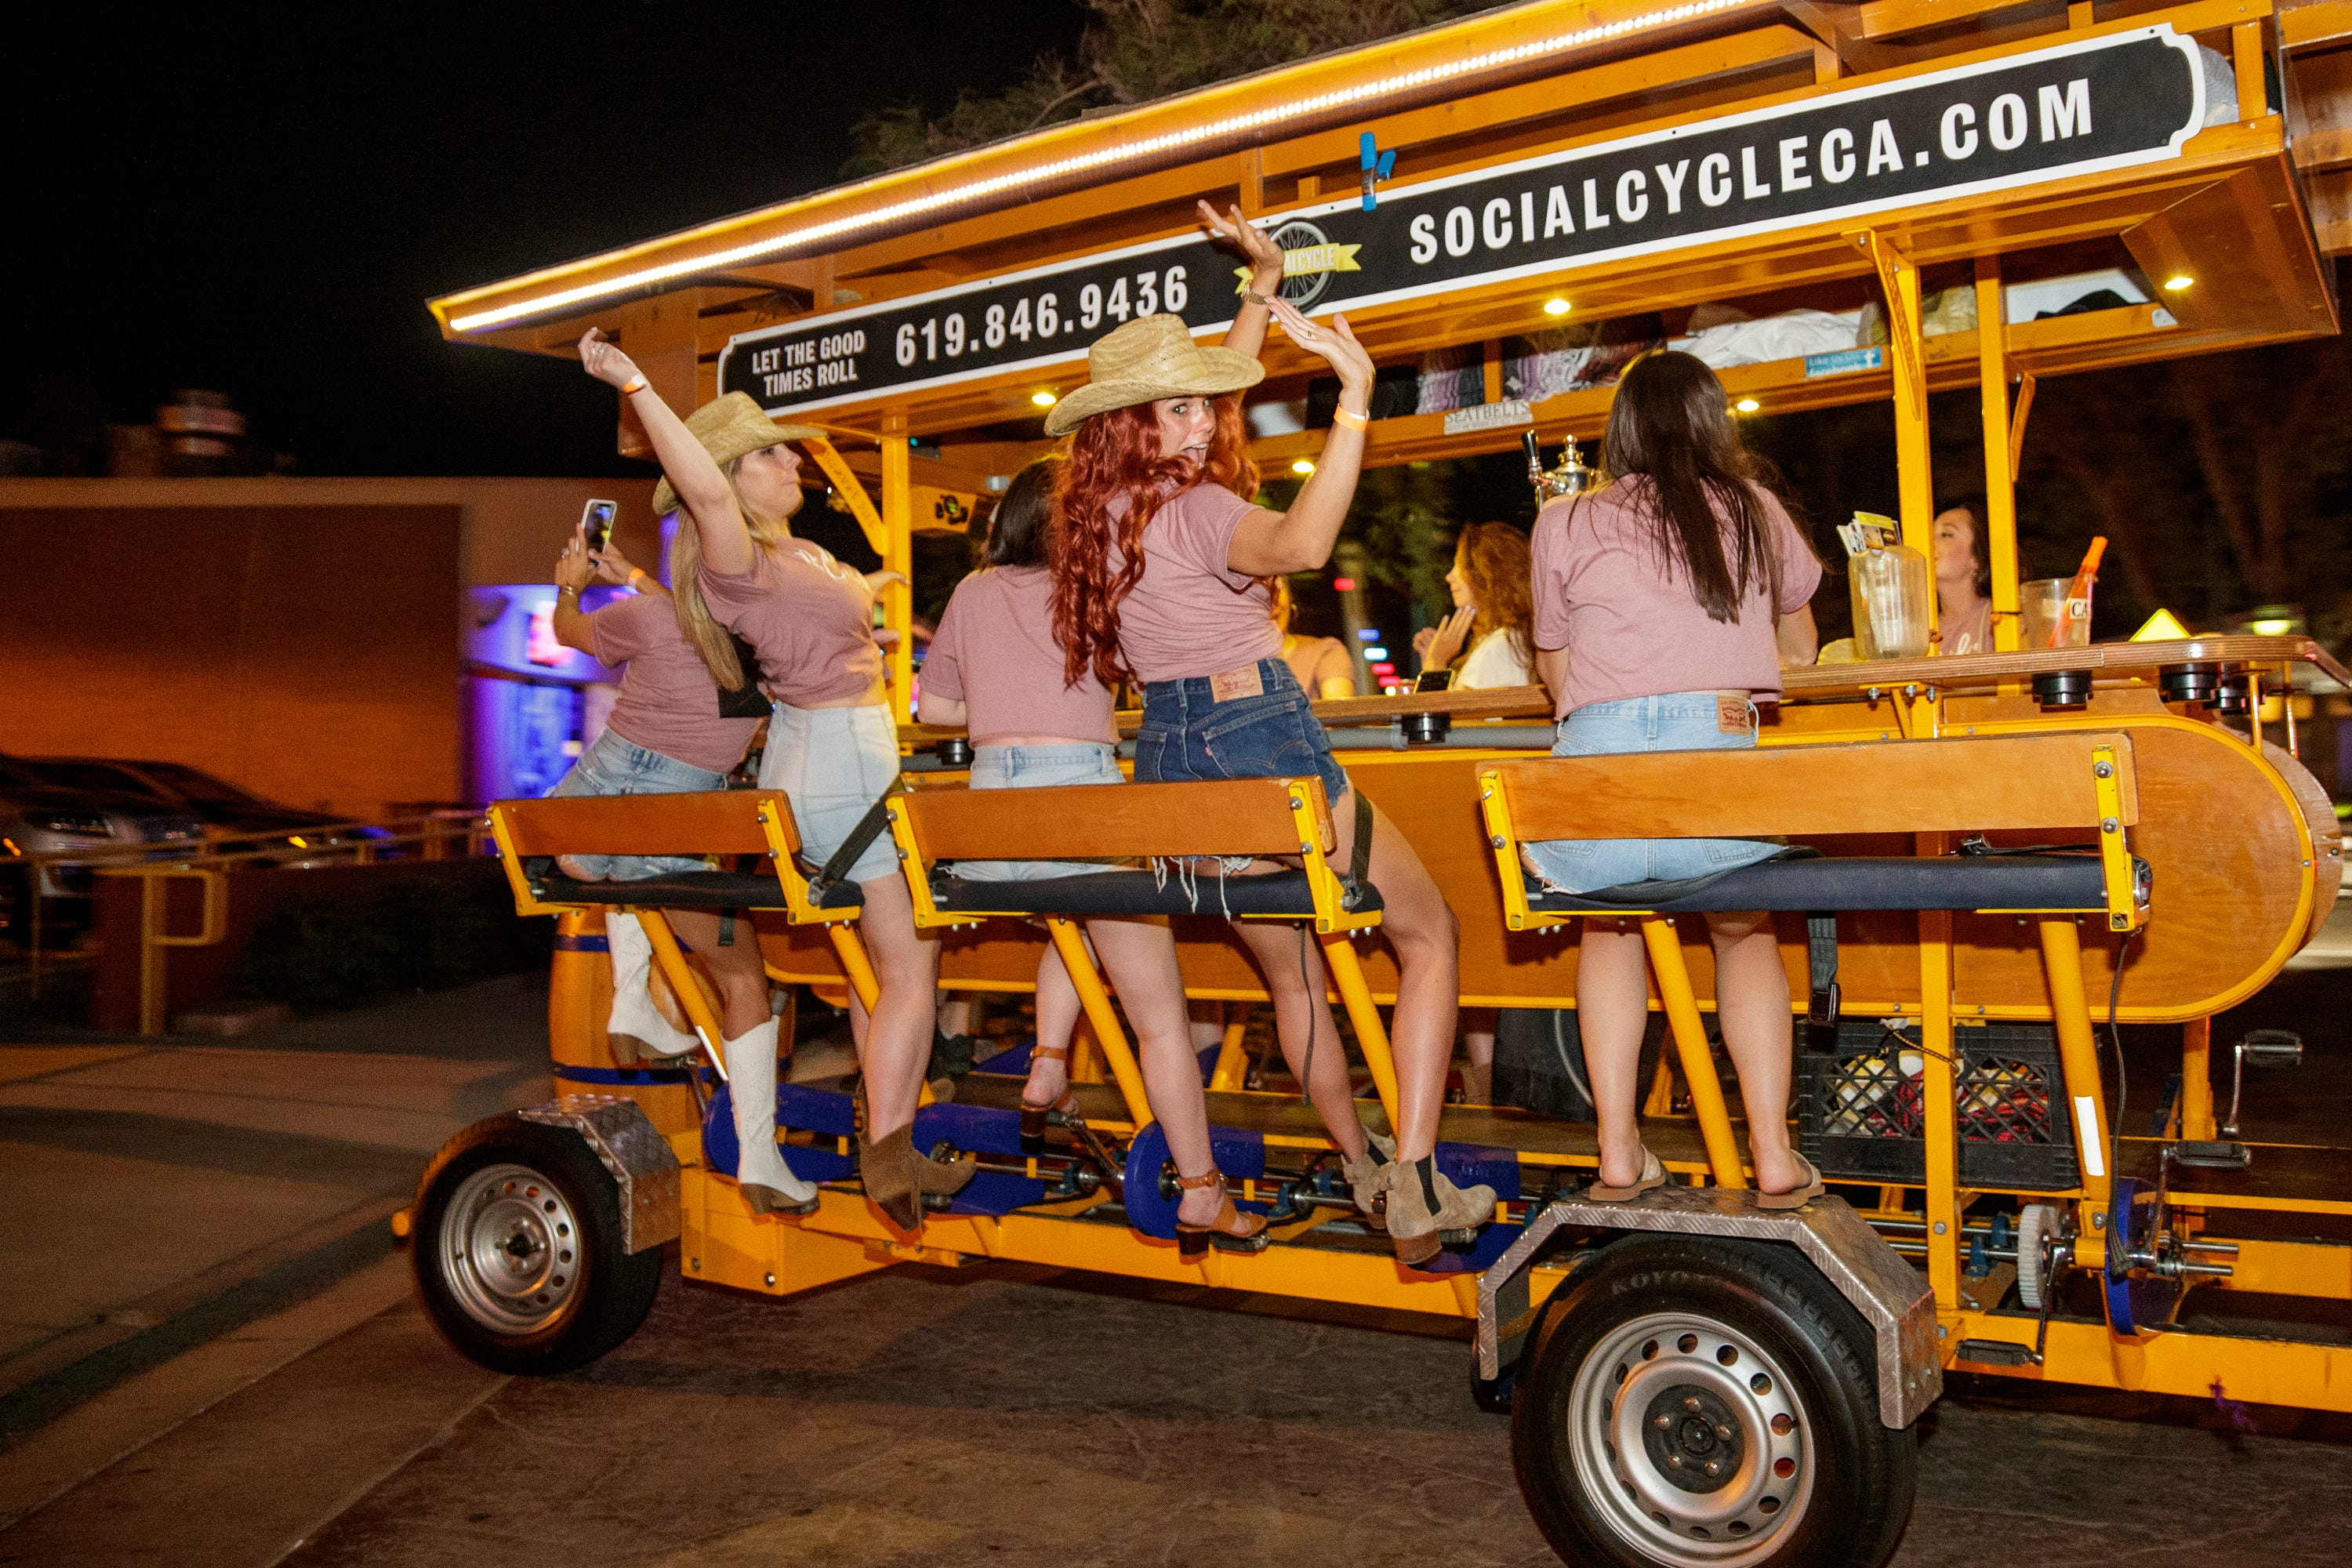 A group of women arrive on Arenas Road via bar bike in Palm Springs, Calif., on Friday, April 30, 2021.